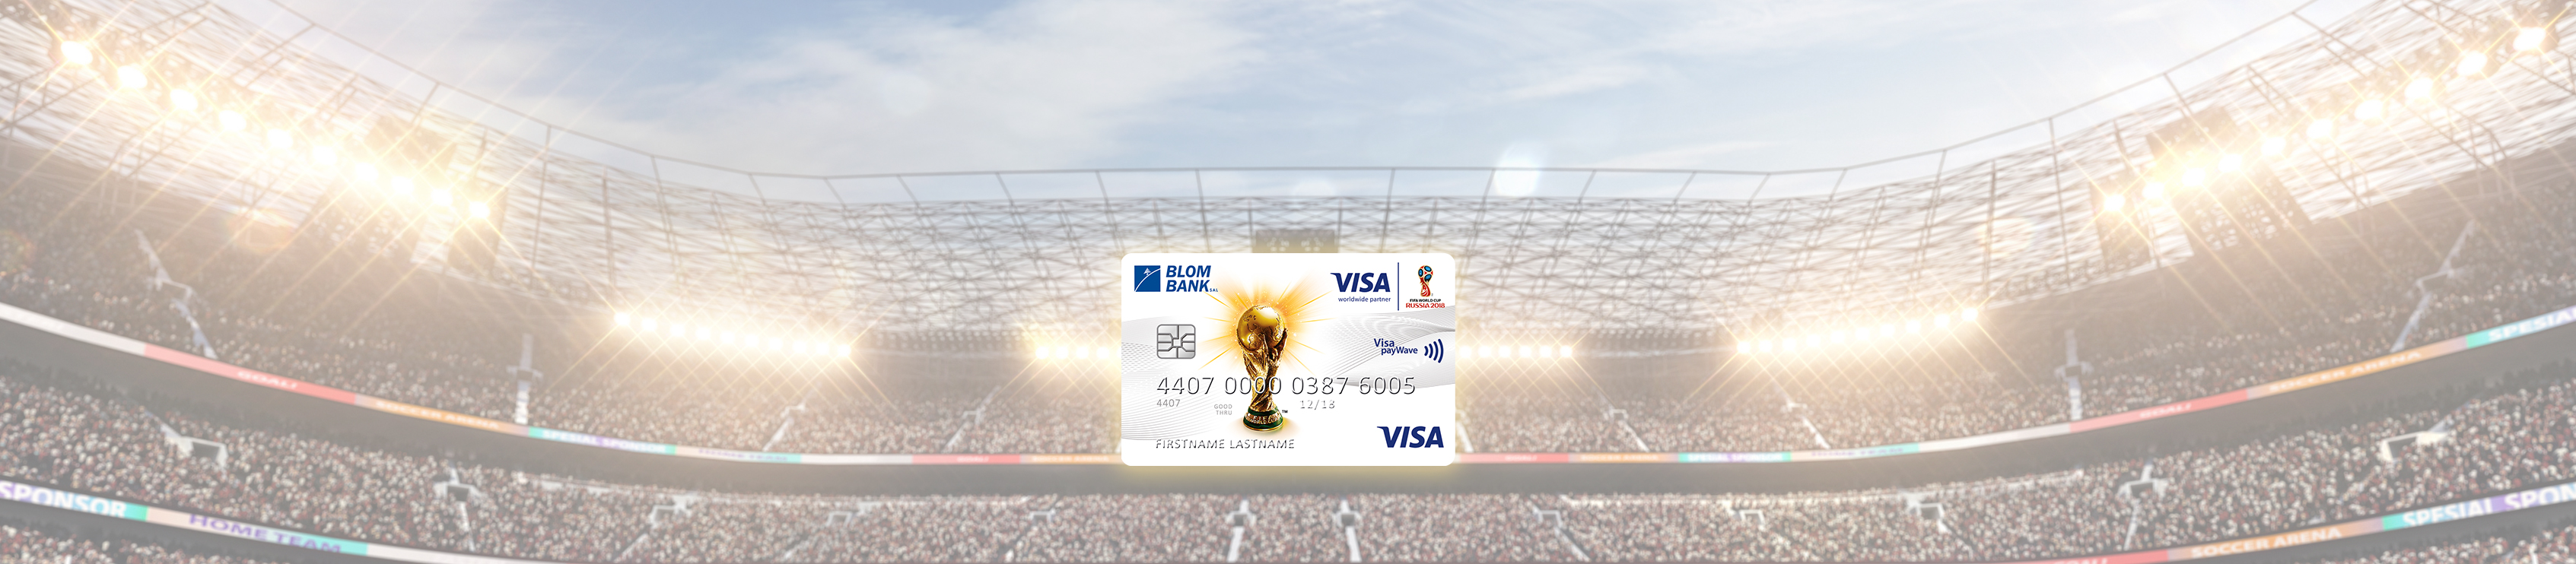 BLOM Visa 2018 FIFA World Cup Russia™ Classic Credit Card